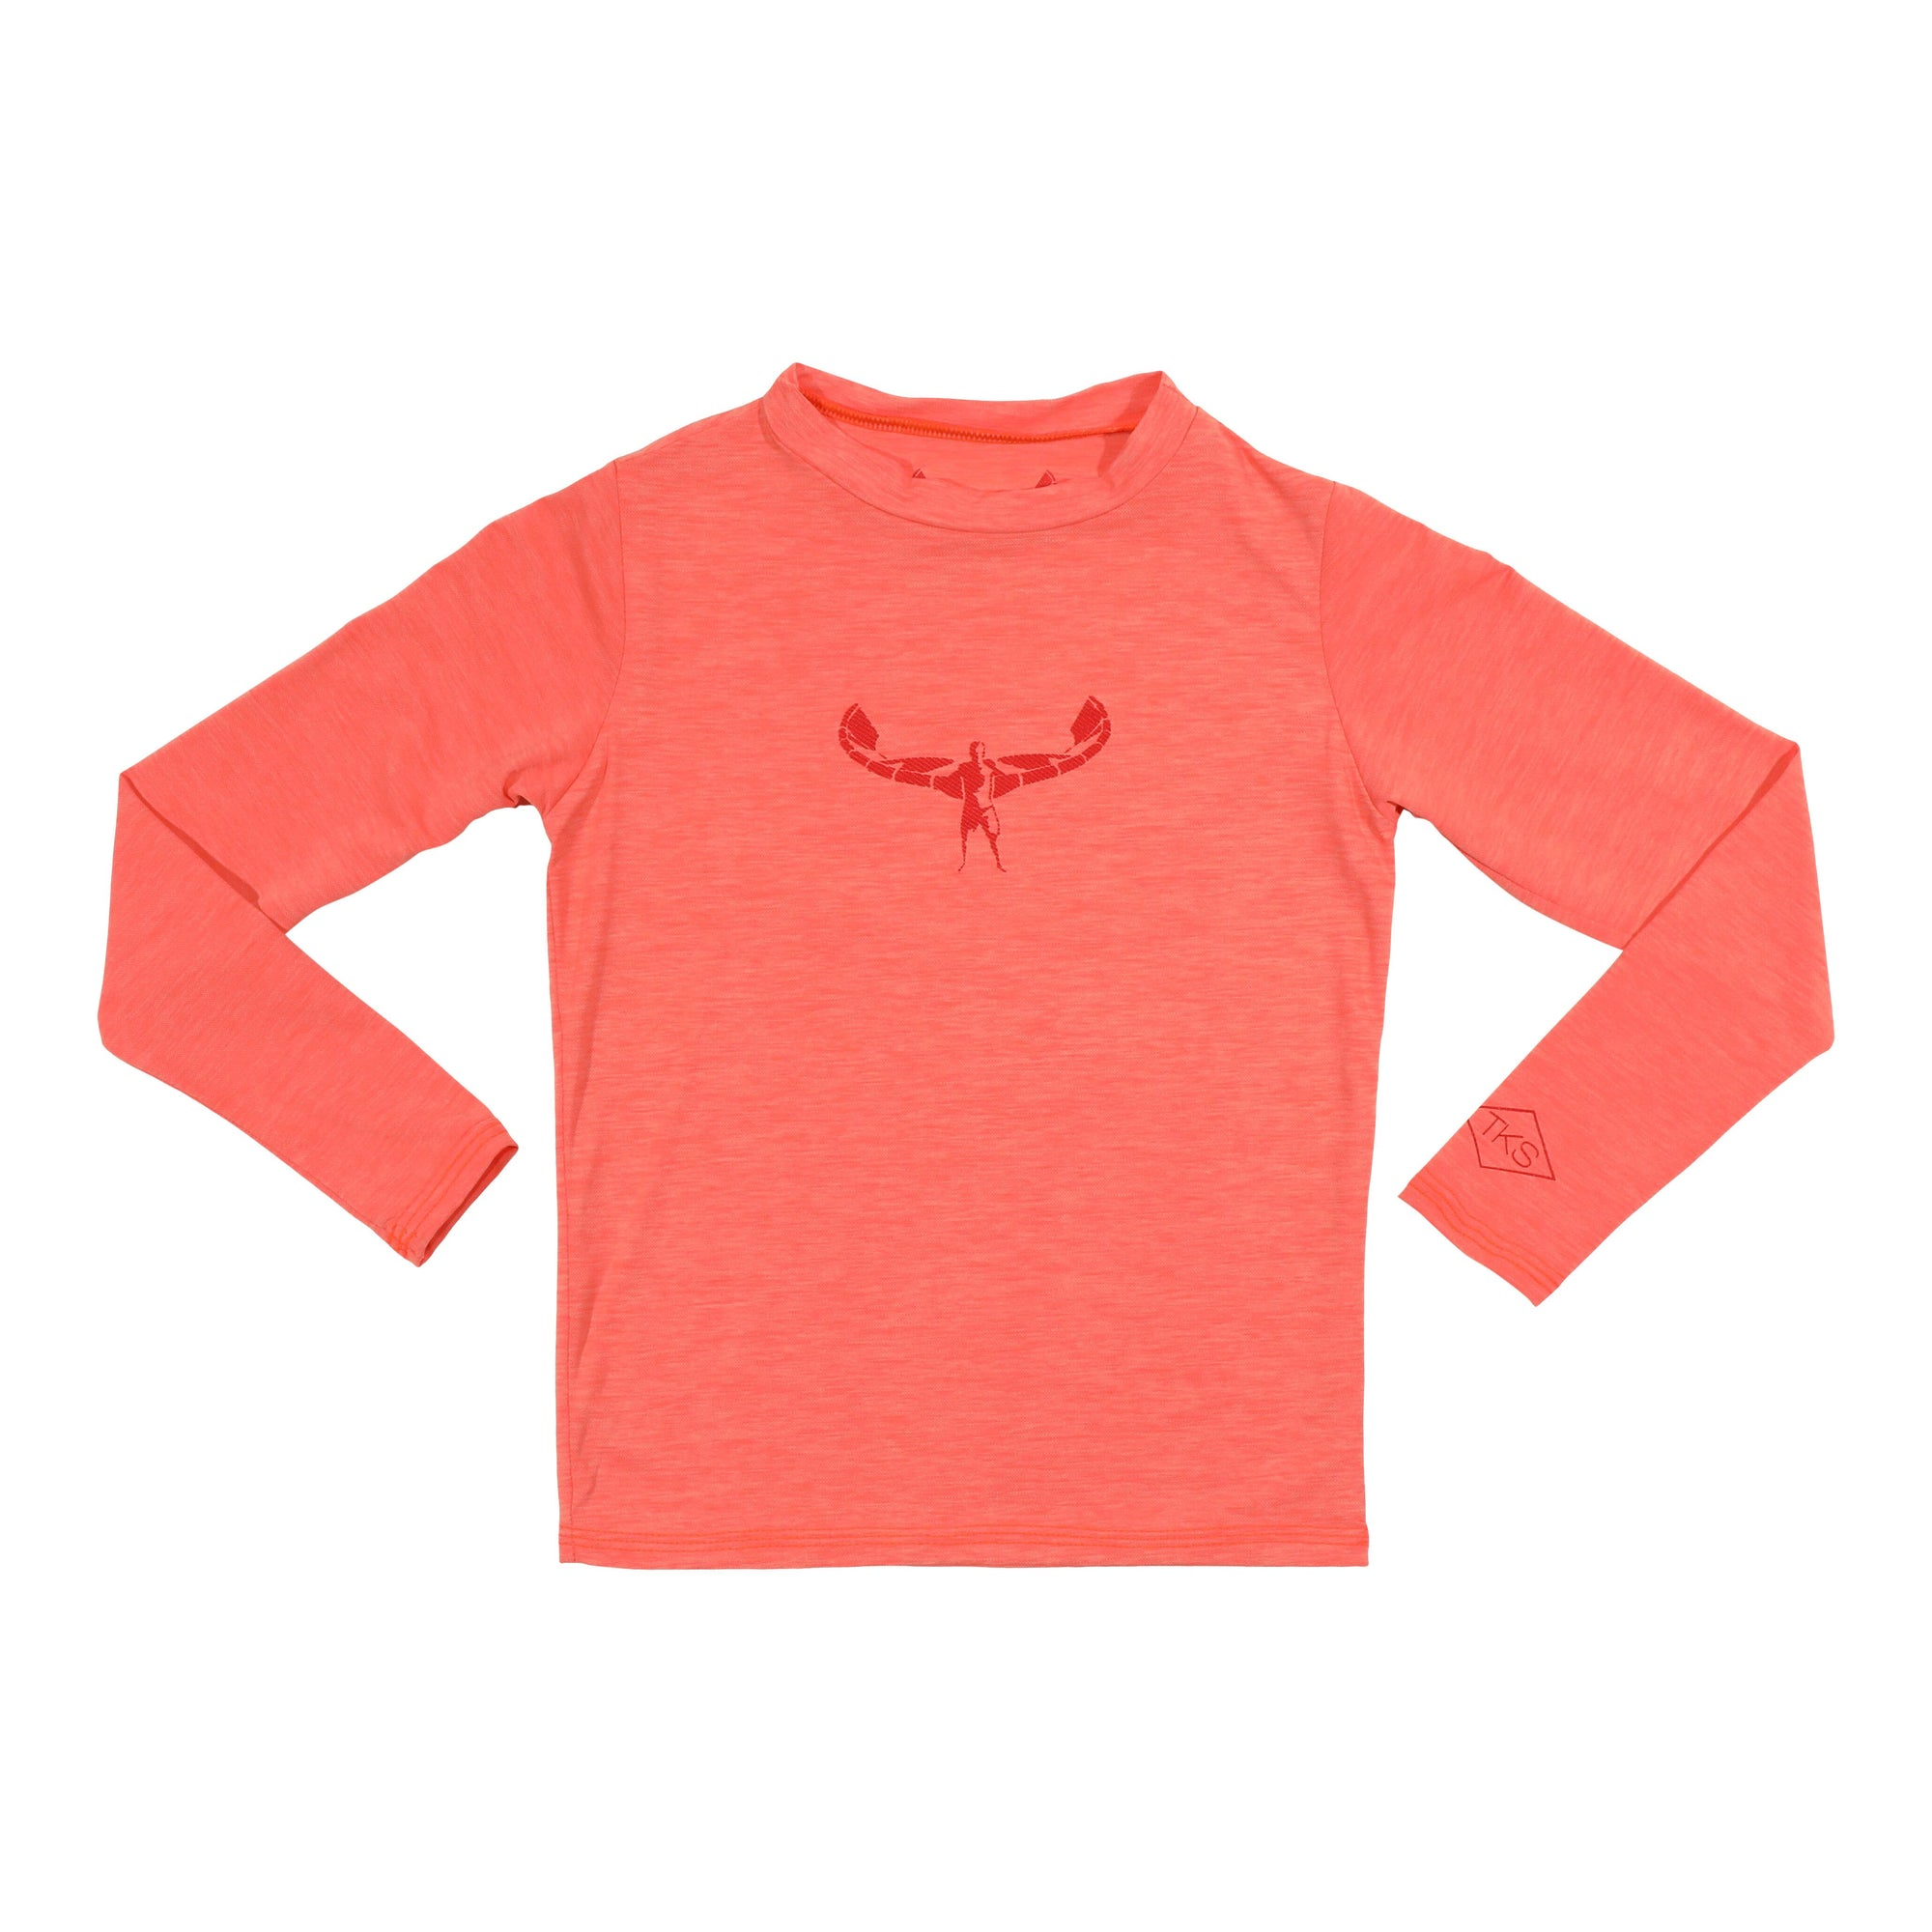 TKS MIAMI KIDS SUNSHIRT LOOSE FIT CORAL UV 30